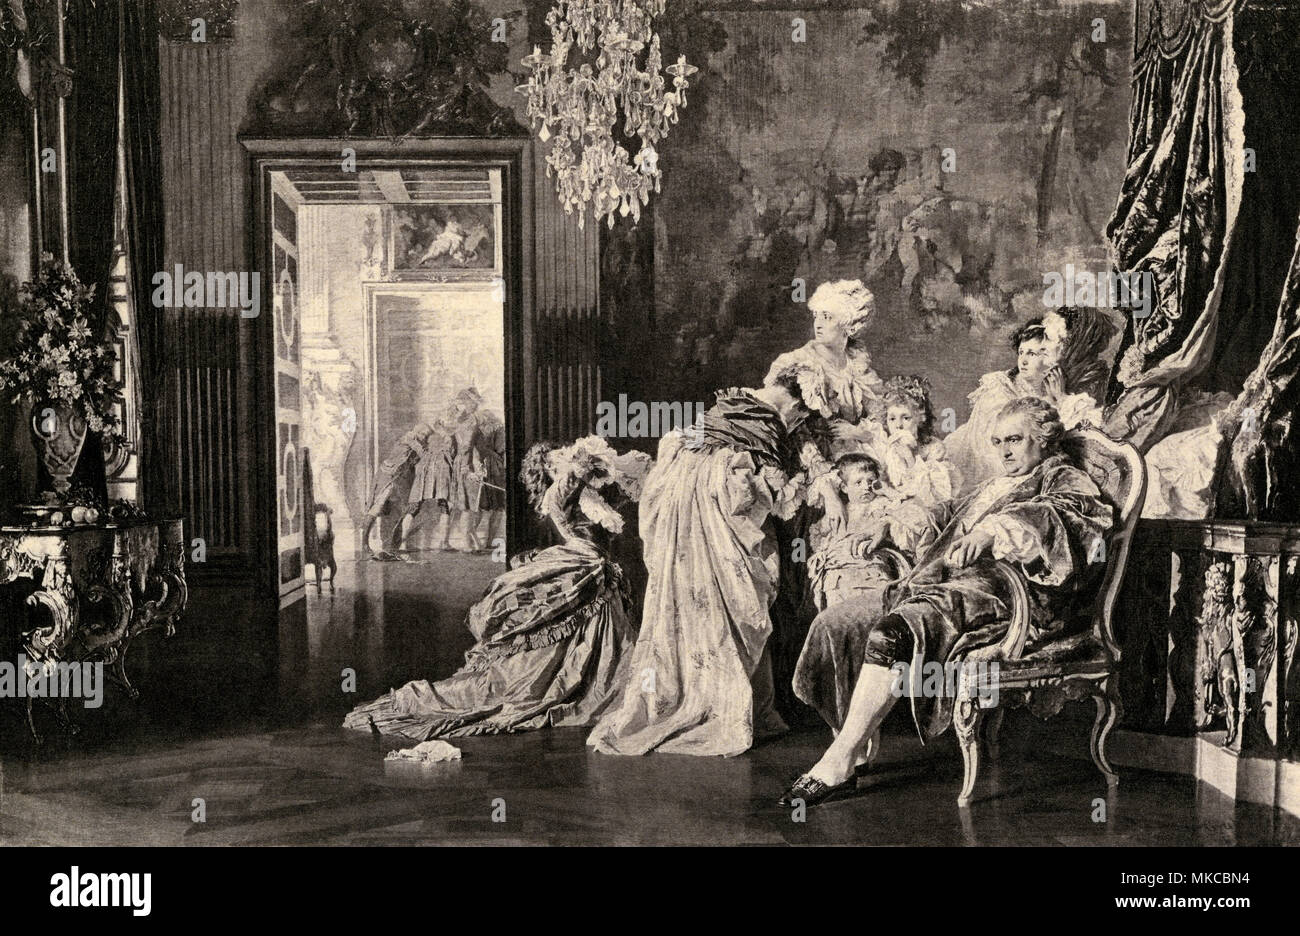 Louis XVI and his family at Versailles, awaiting the mob, French Revolution. Photogravre reproduction of a painting - Stock Image